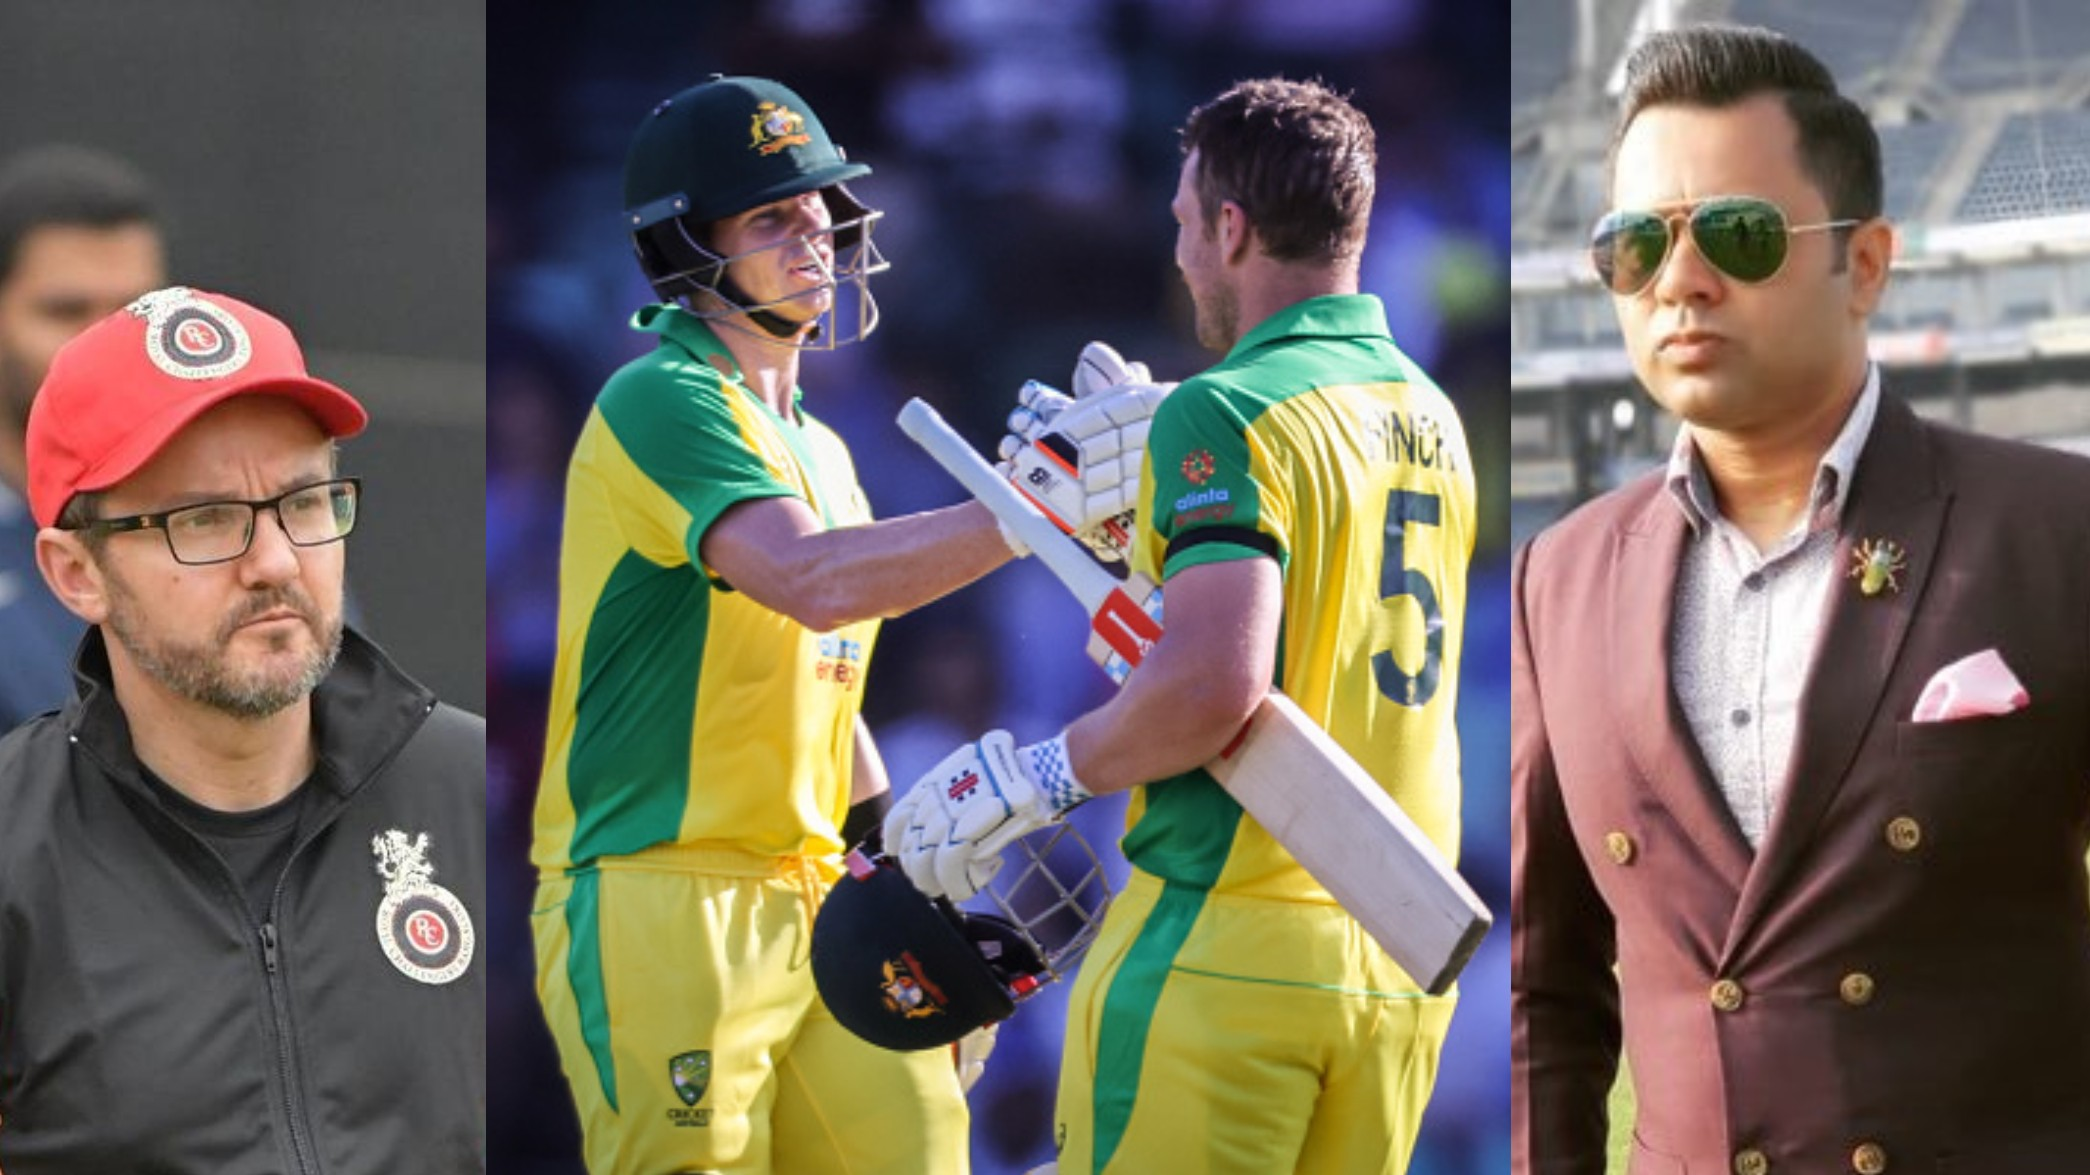 AUS v IND 2020-21: Cricket fraternity applauds Finch's 114 and Smith's 105 as Australia makes 374/6